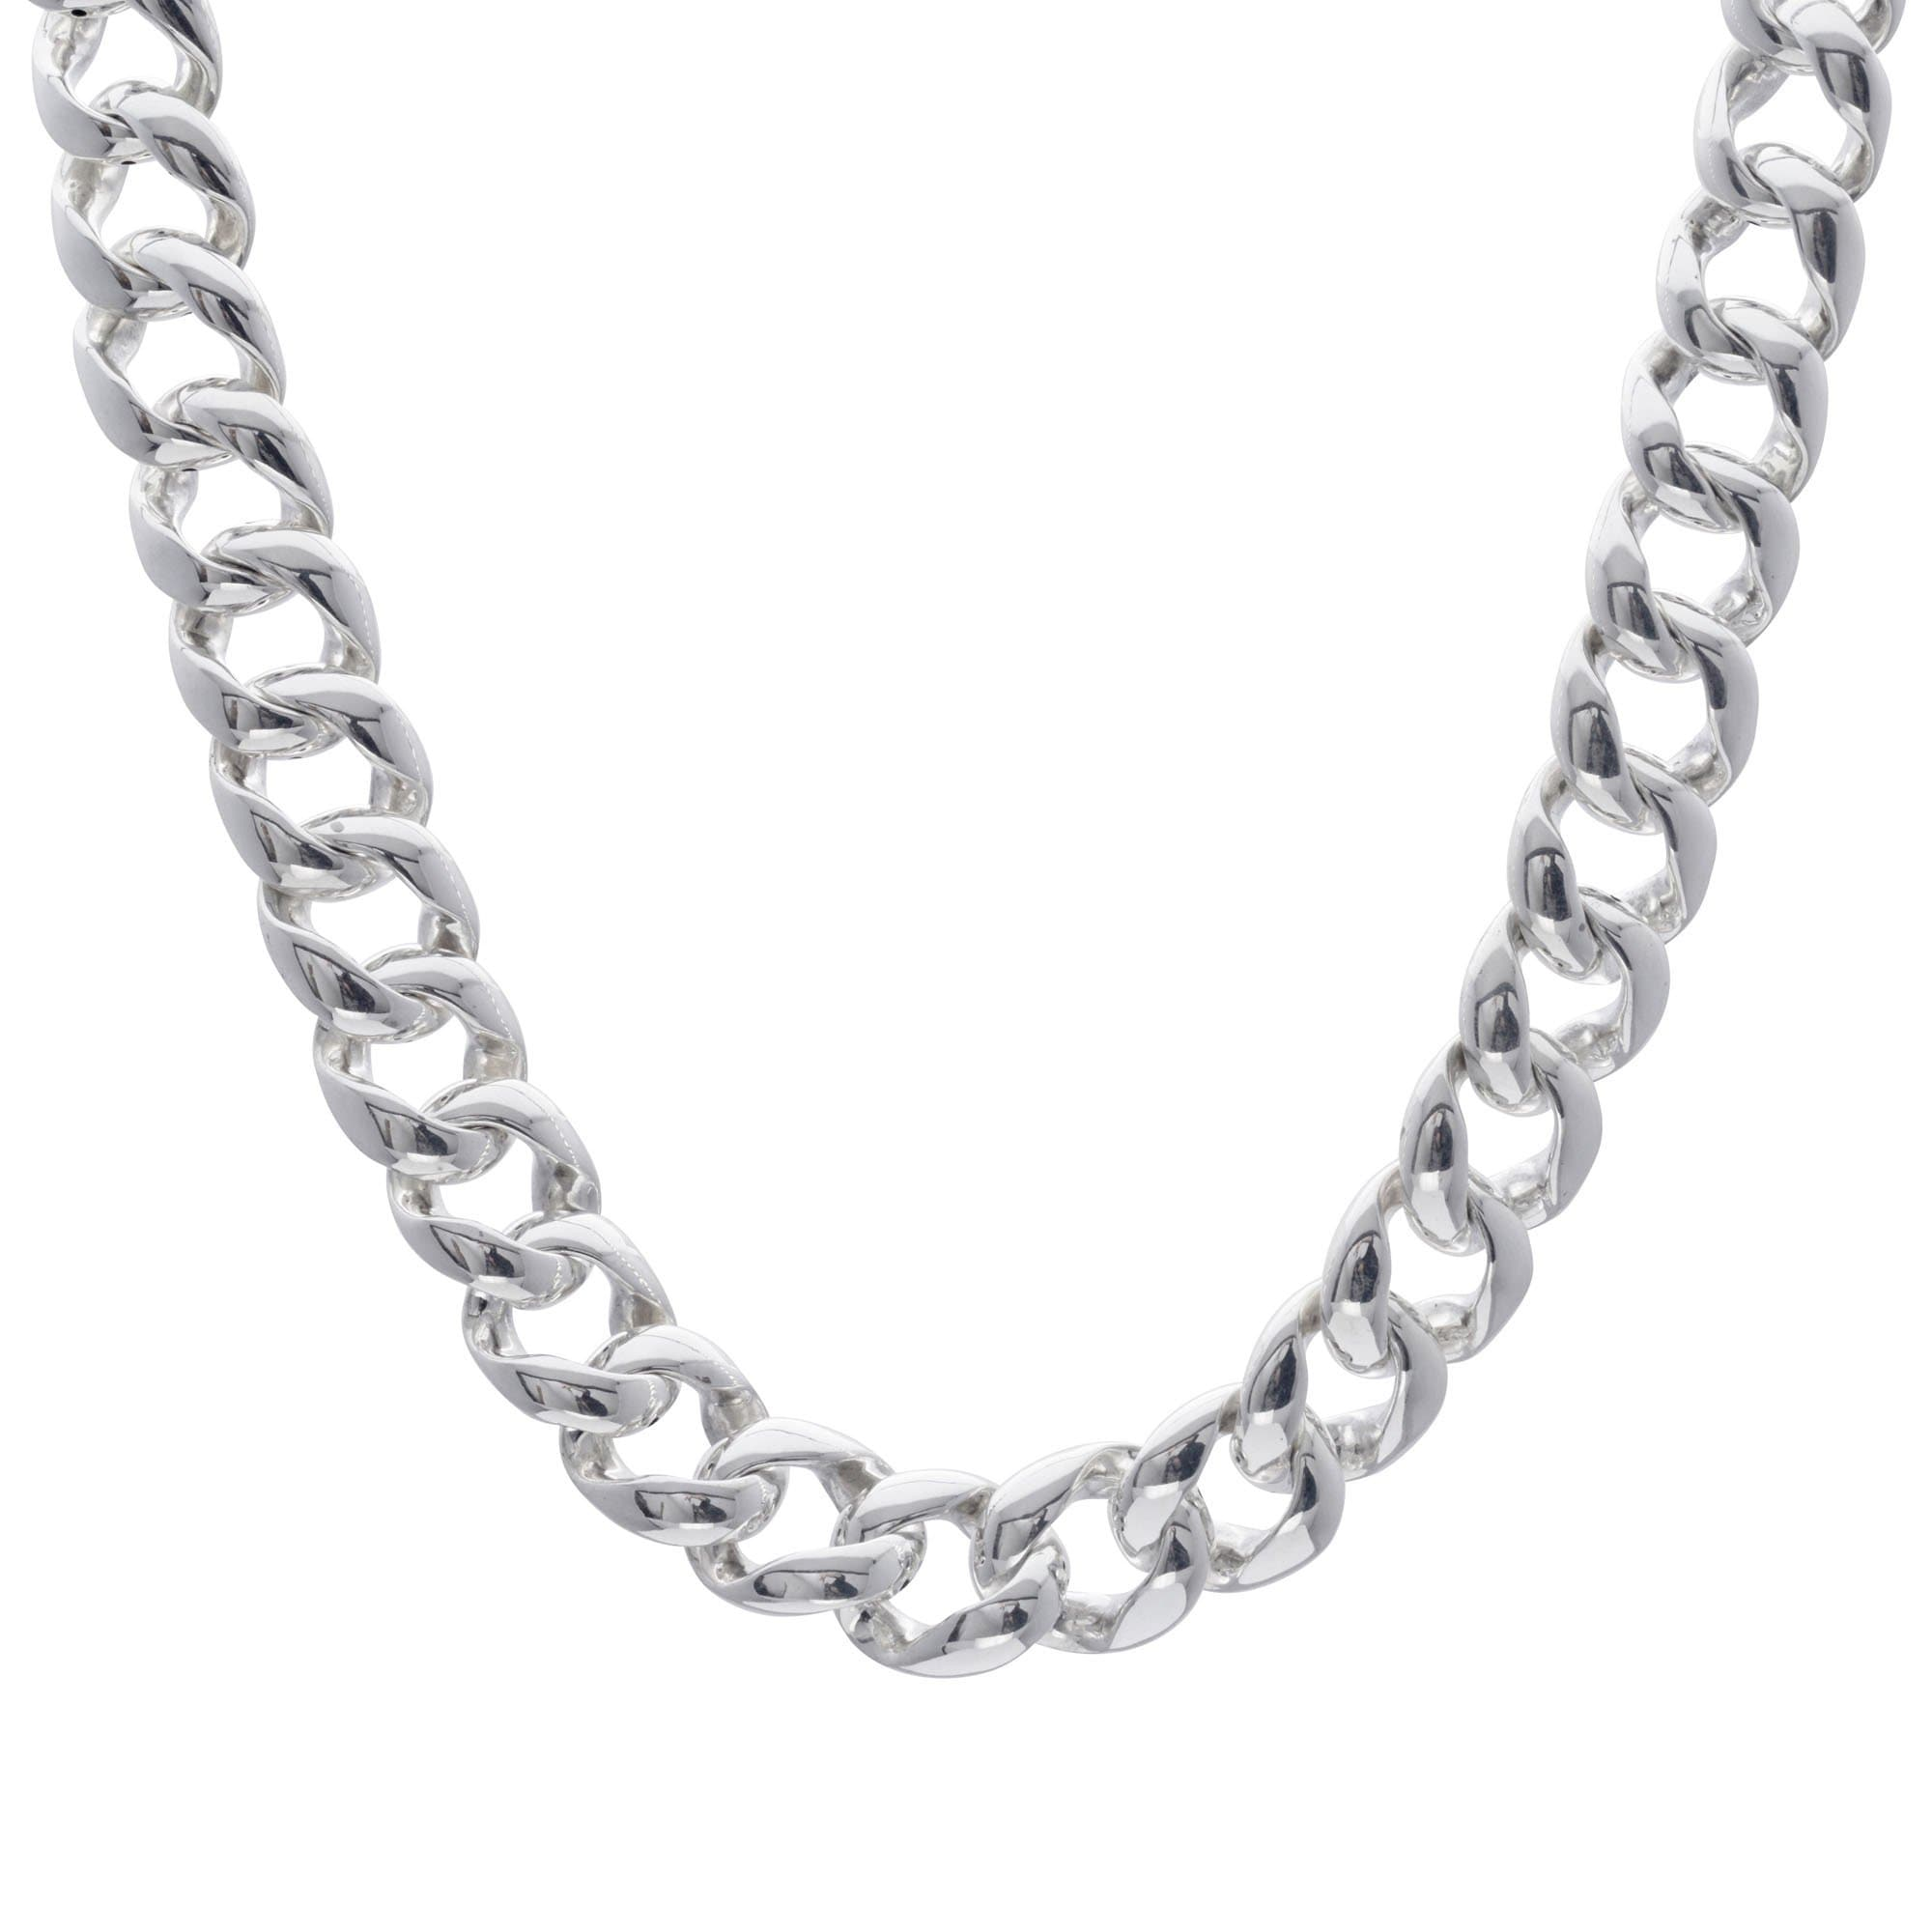 8c0324c0b Chunky Silver Necklace Curb Chain 50 cm - Silverly